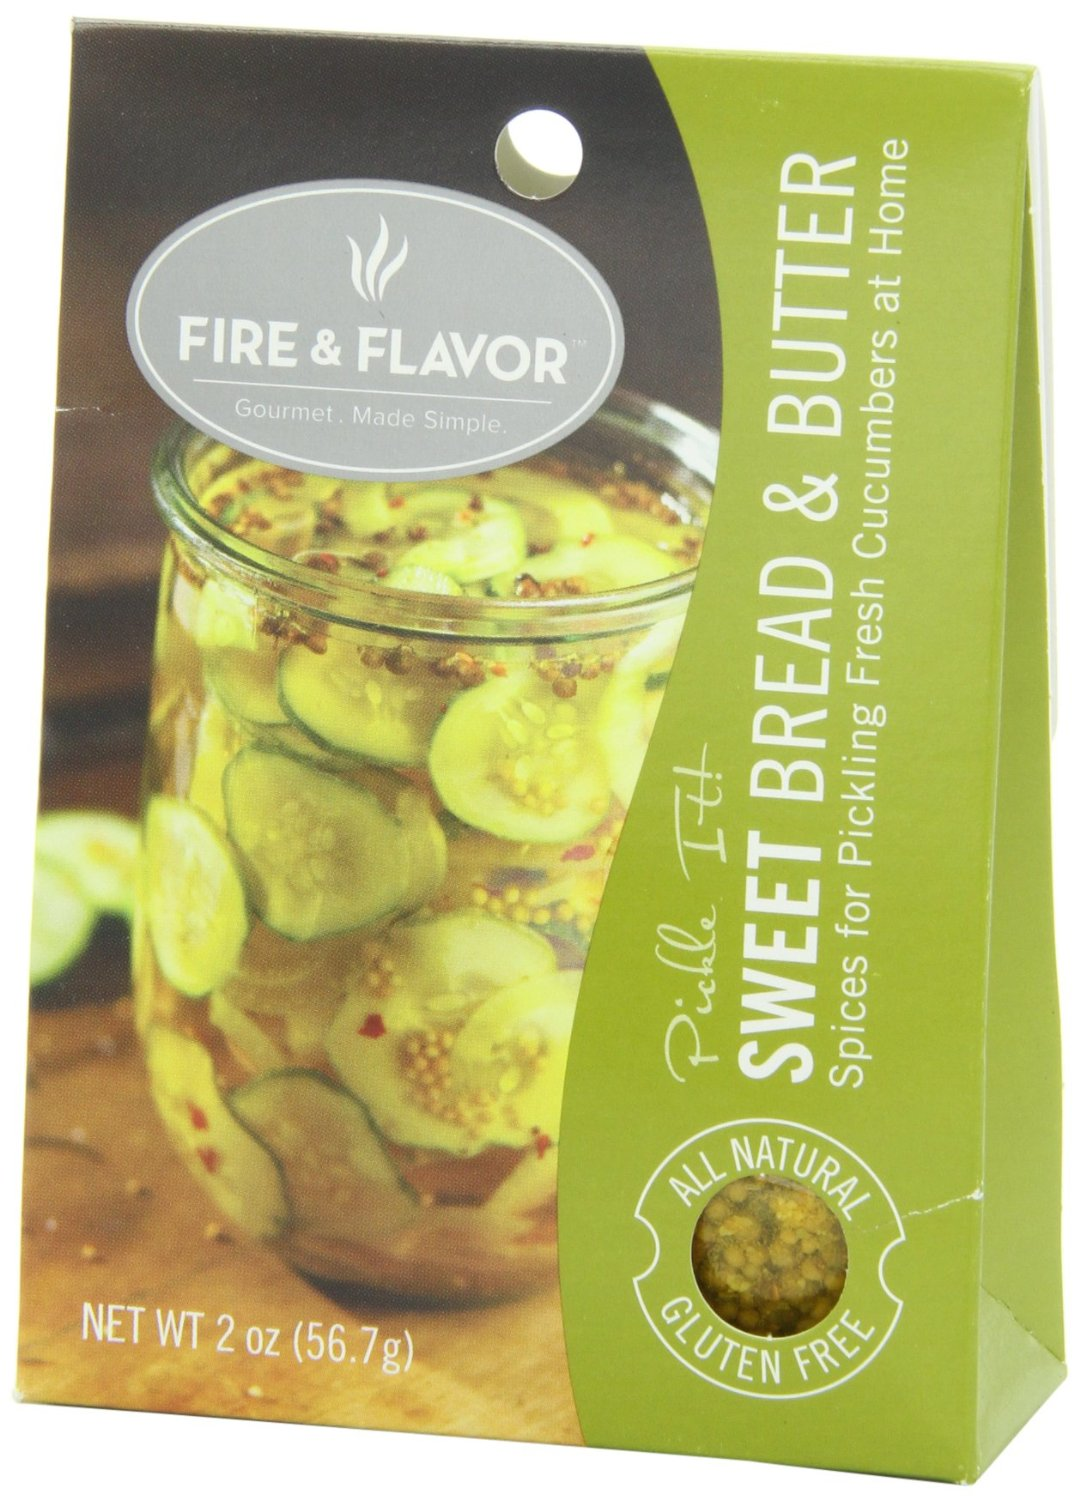 Fire flavor sweet pickling spice